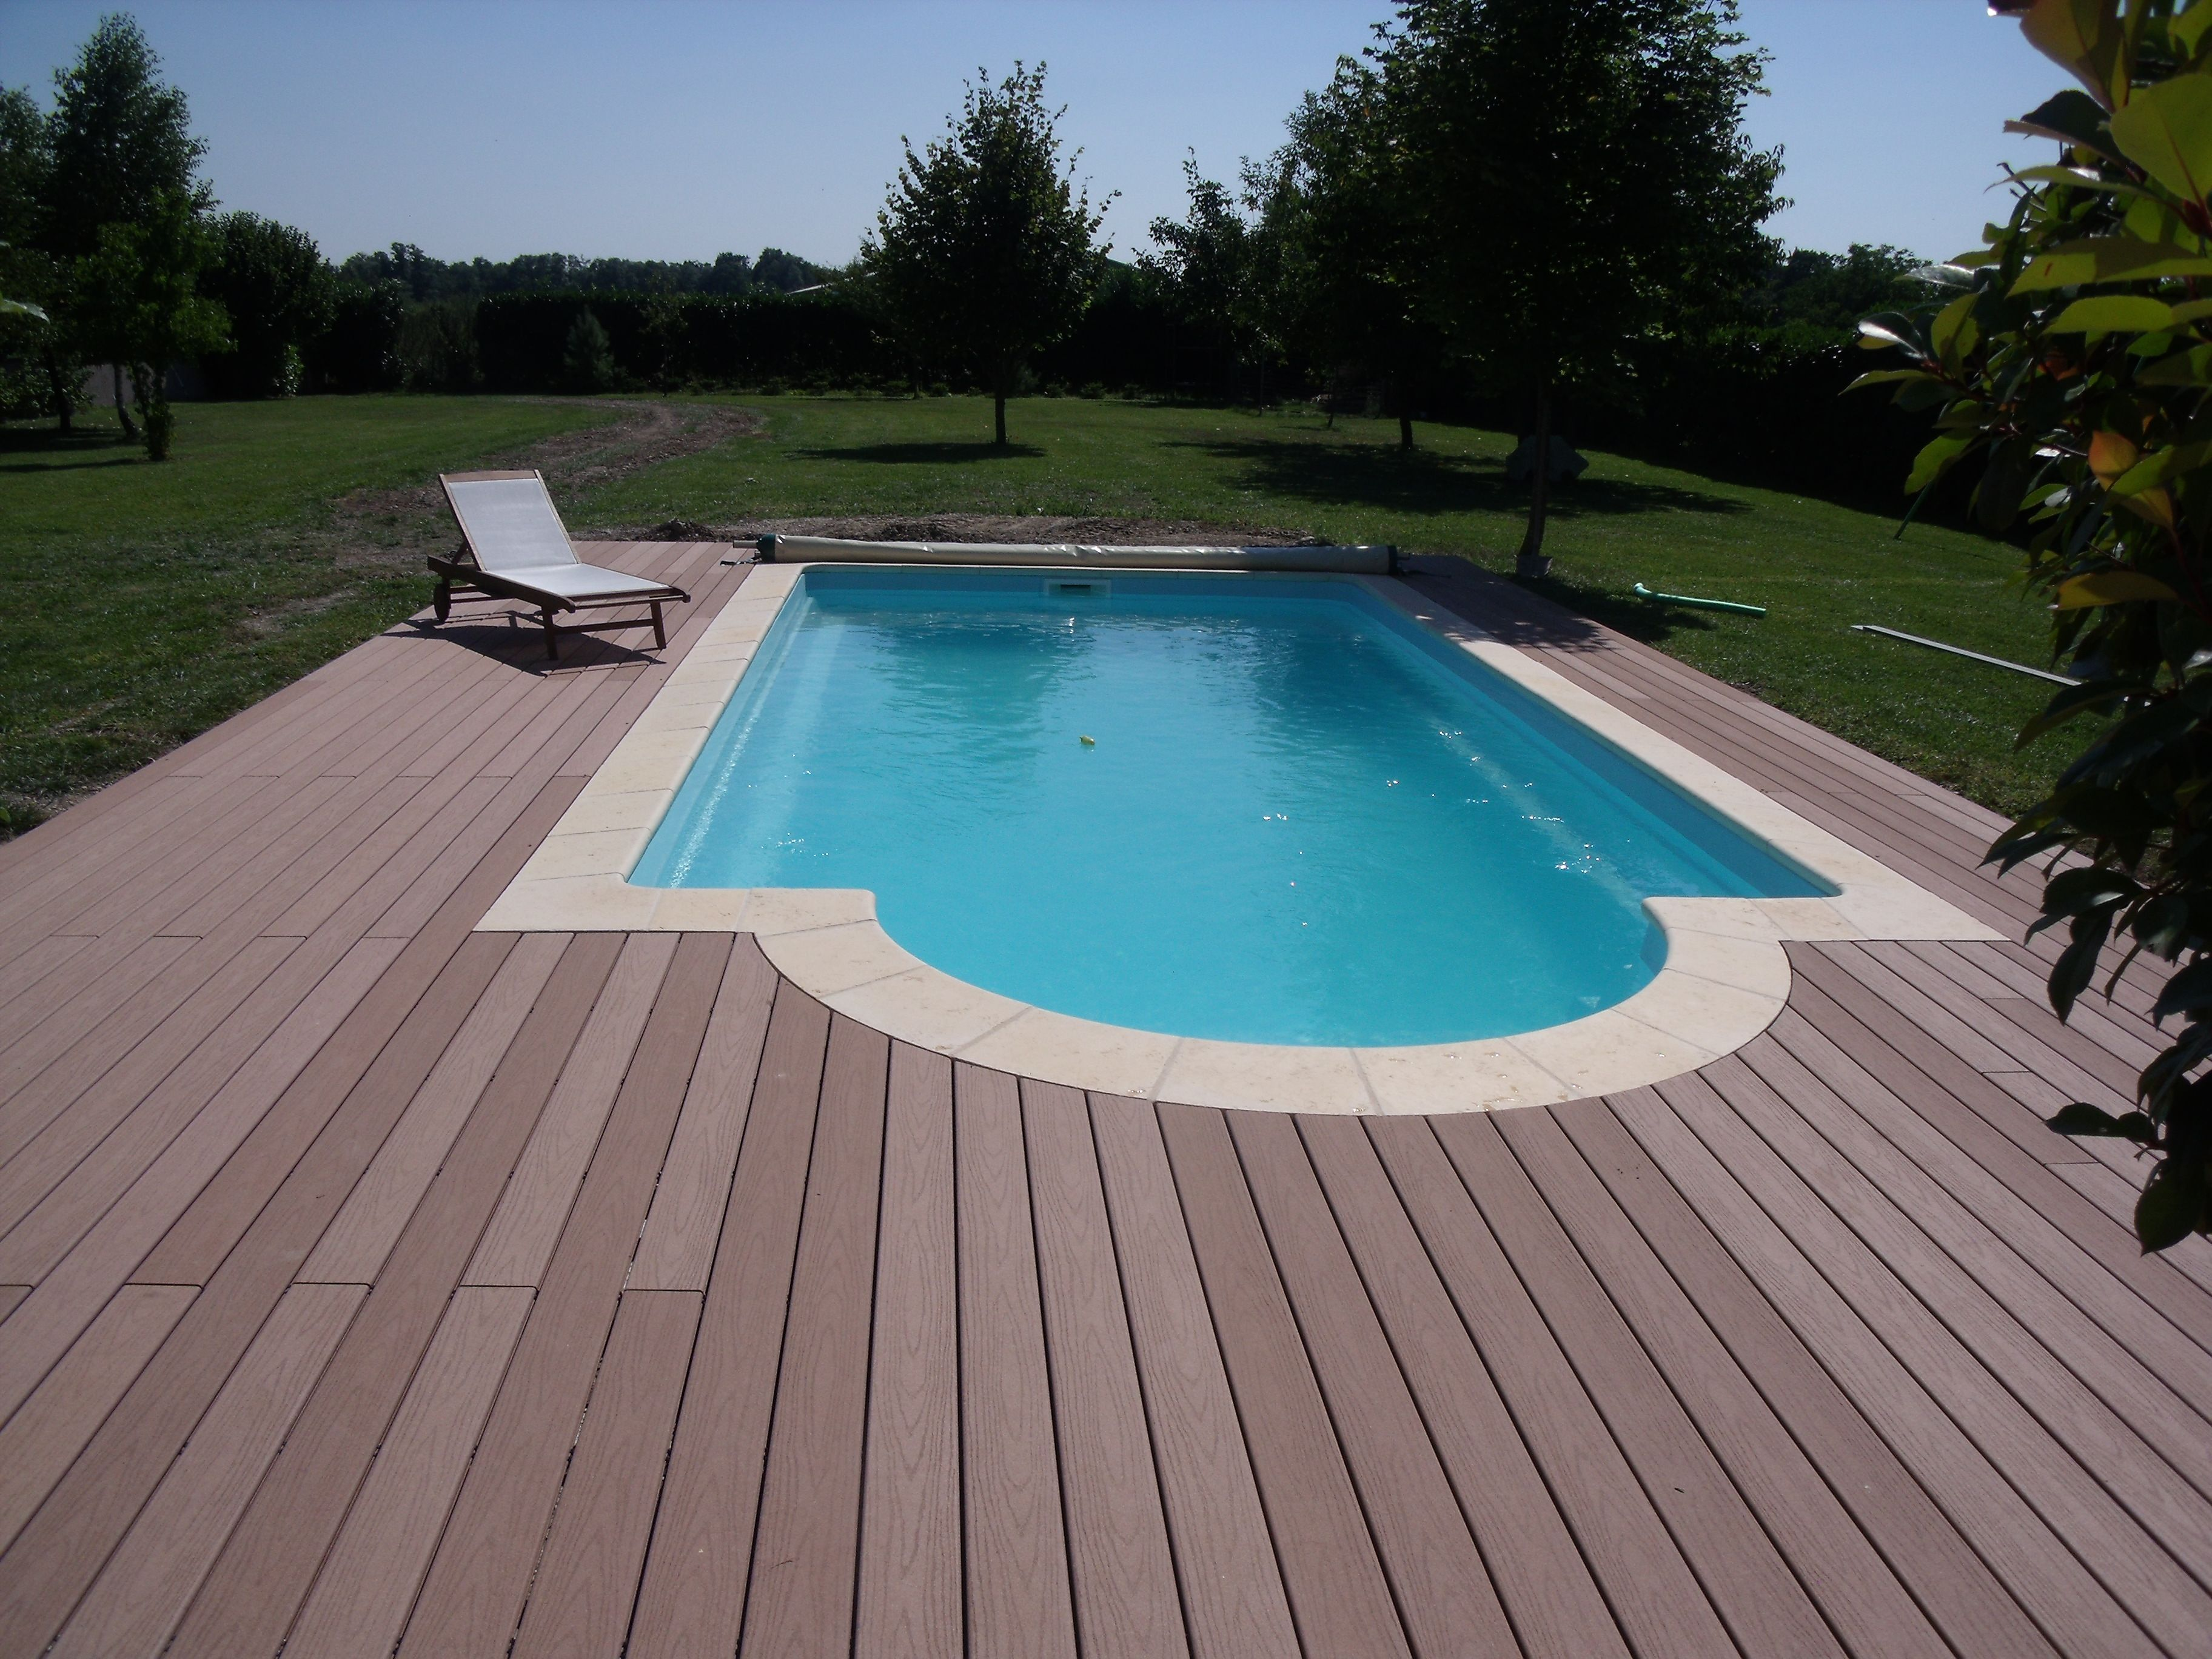 Piscine Coque Polyester Forme Rectangulaire 8x4 A Fond Plat